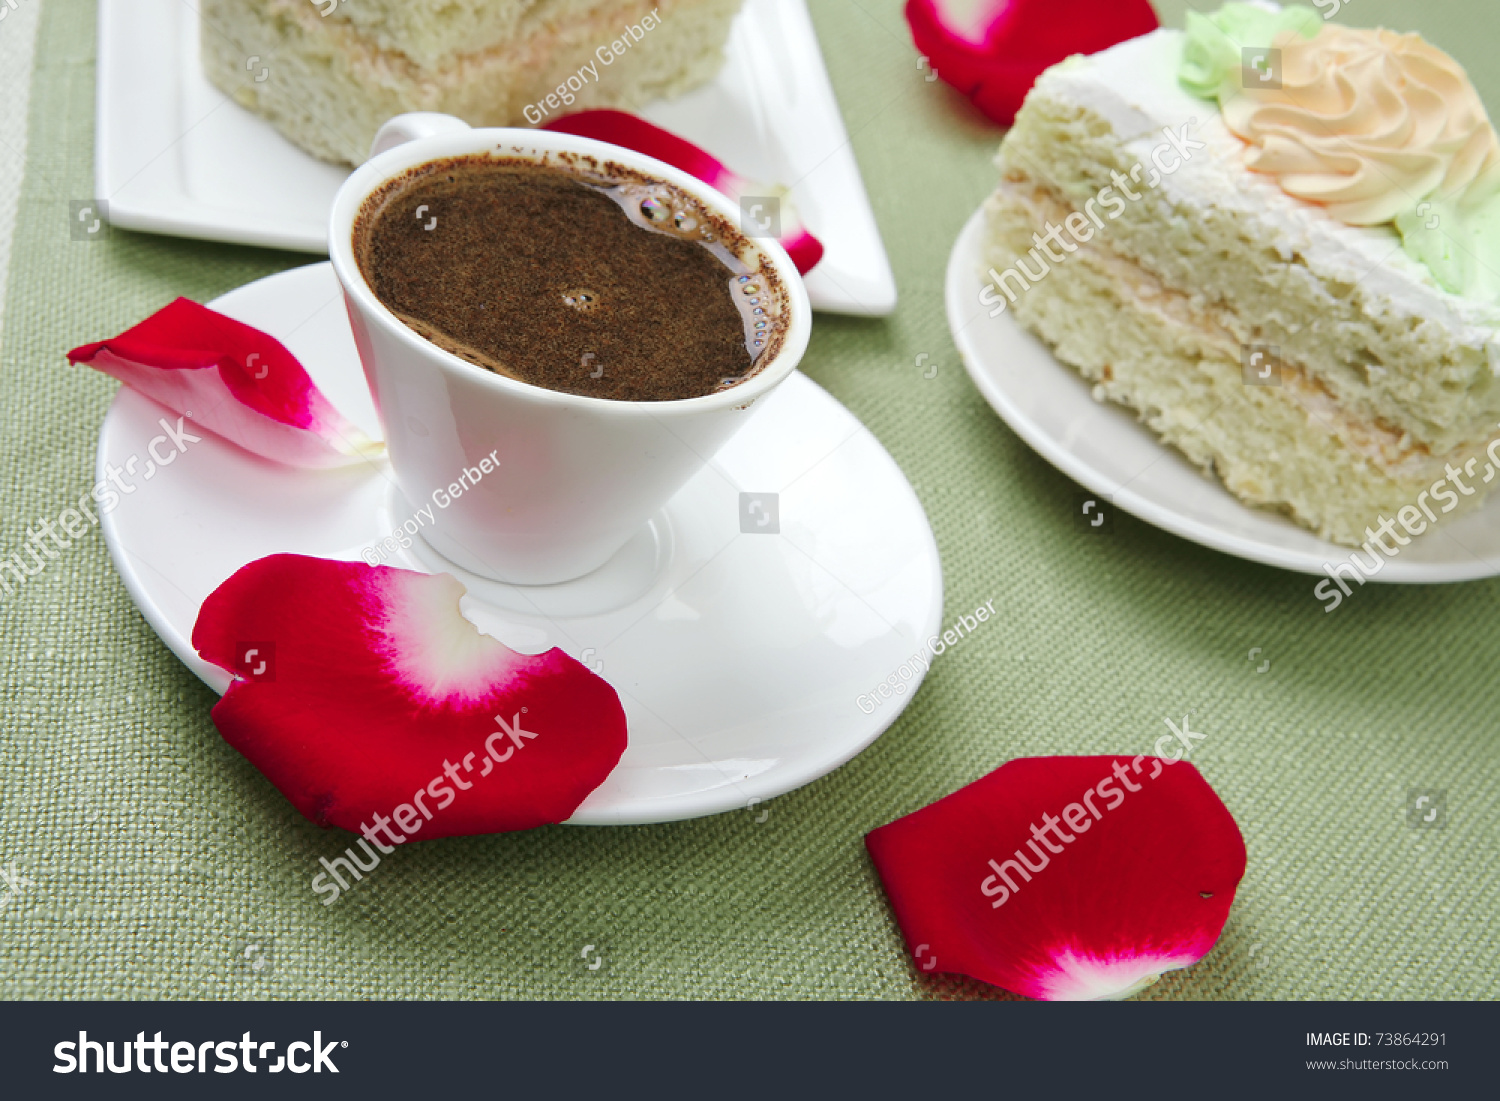 Good Morning : Cake With Whipped Cream Served With Black ...